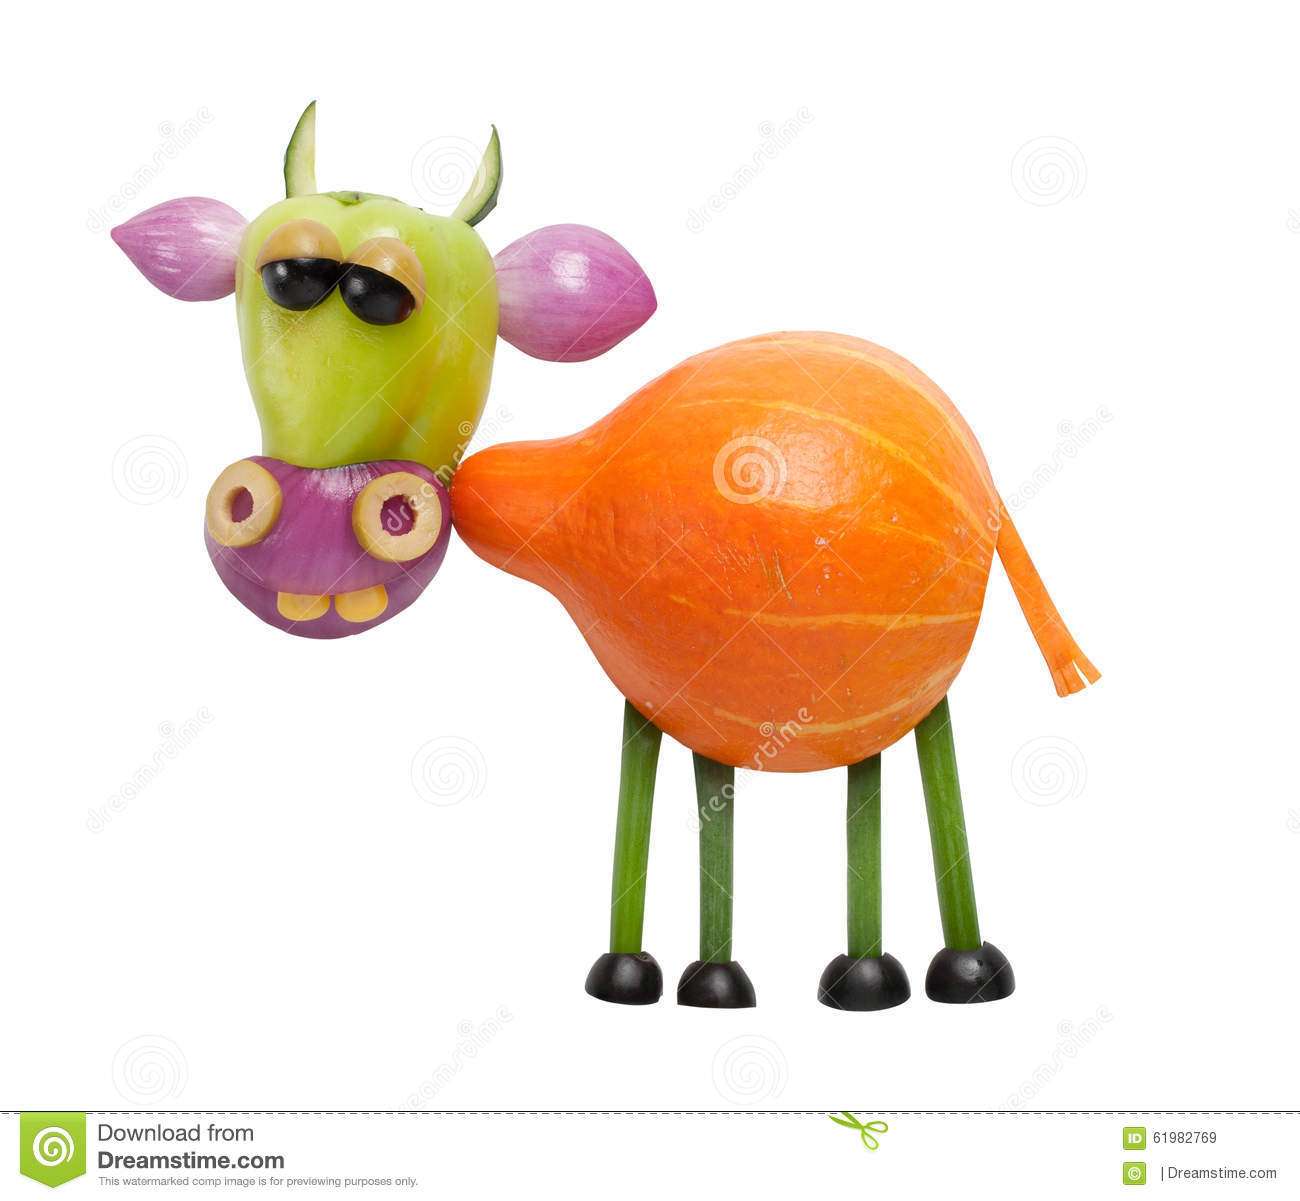 Funny cow made of vegetables